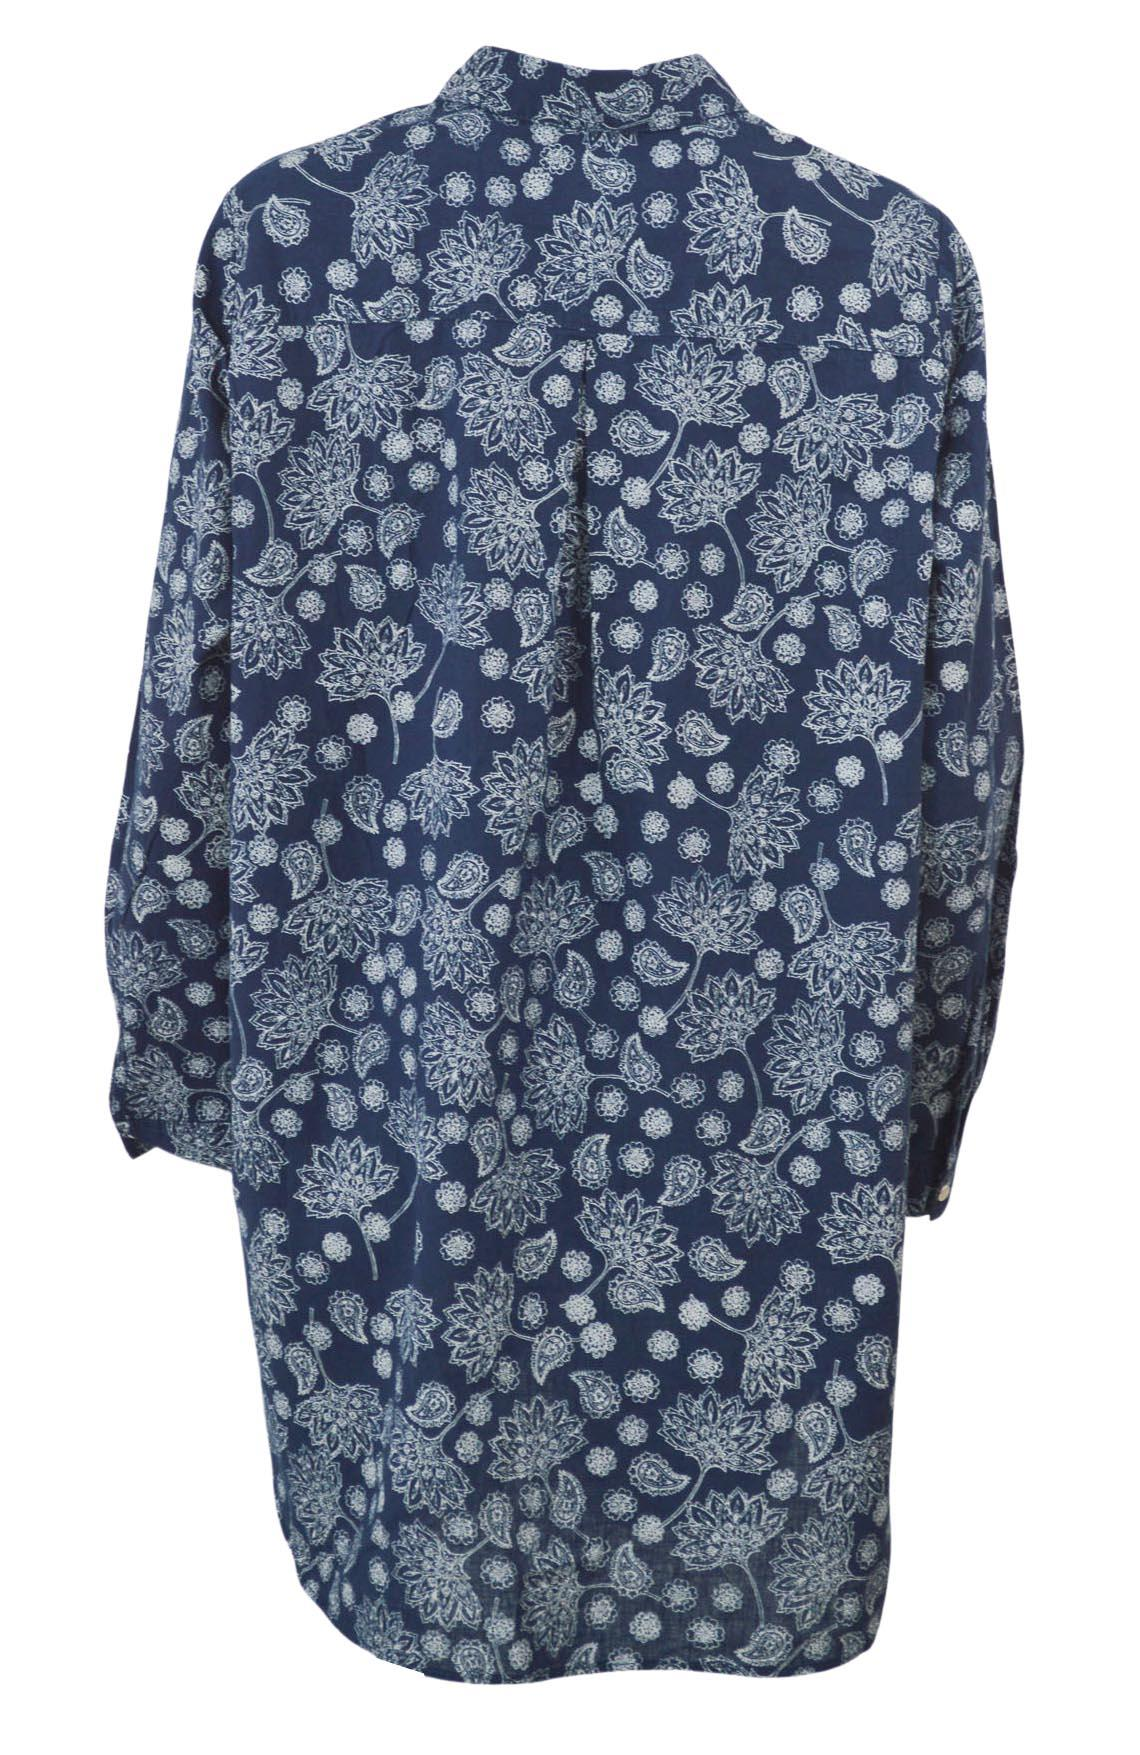 YESSICA-Womens-Ivory-Navy-Floral-Linen-Cotton-Long-Sleeve-Shirt-RRP-28 thumbnail 12